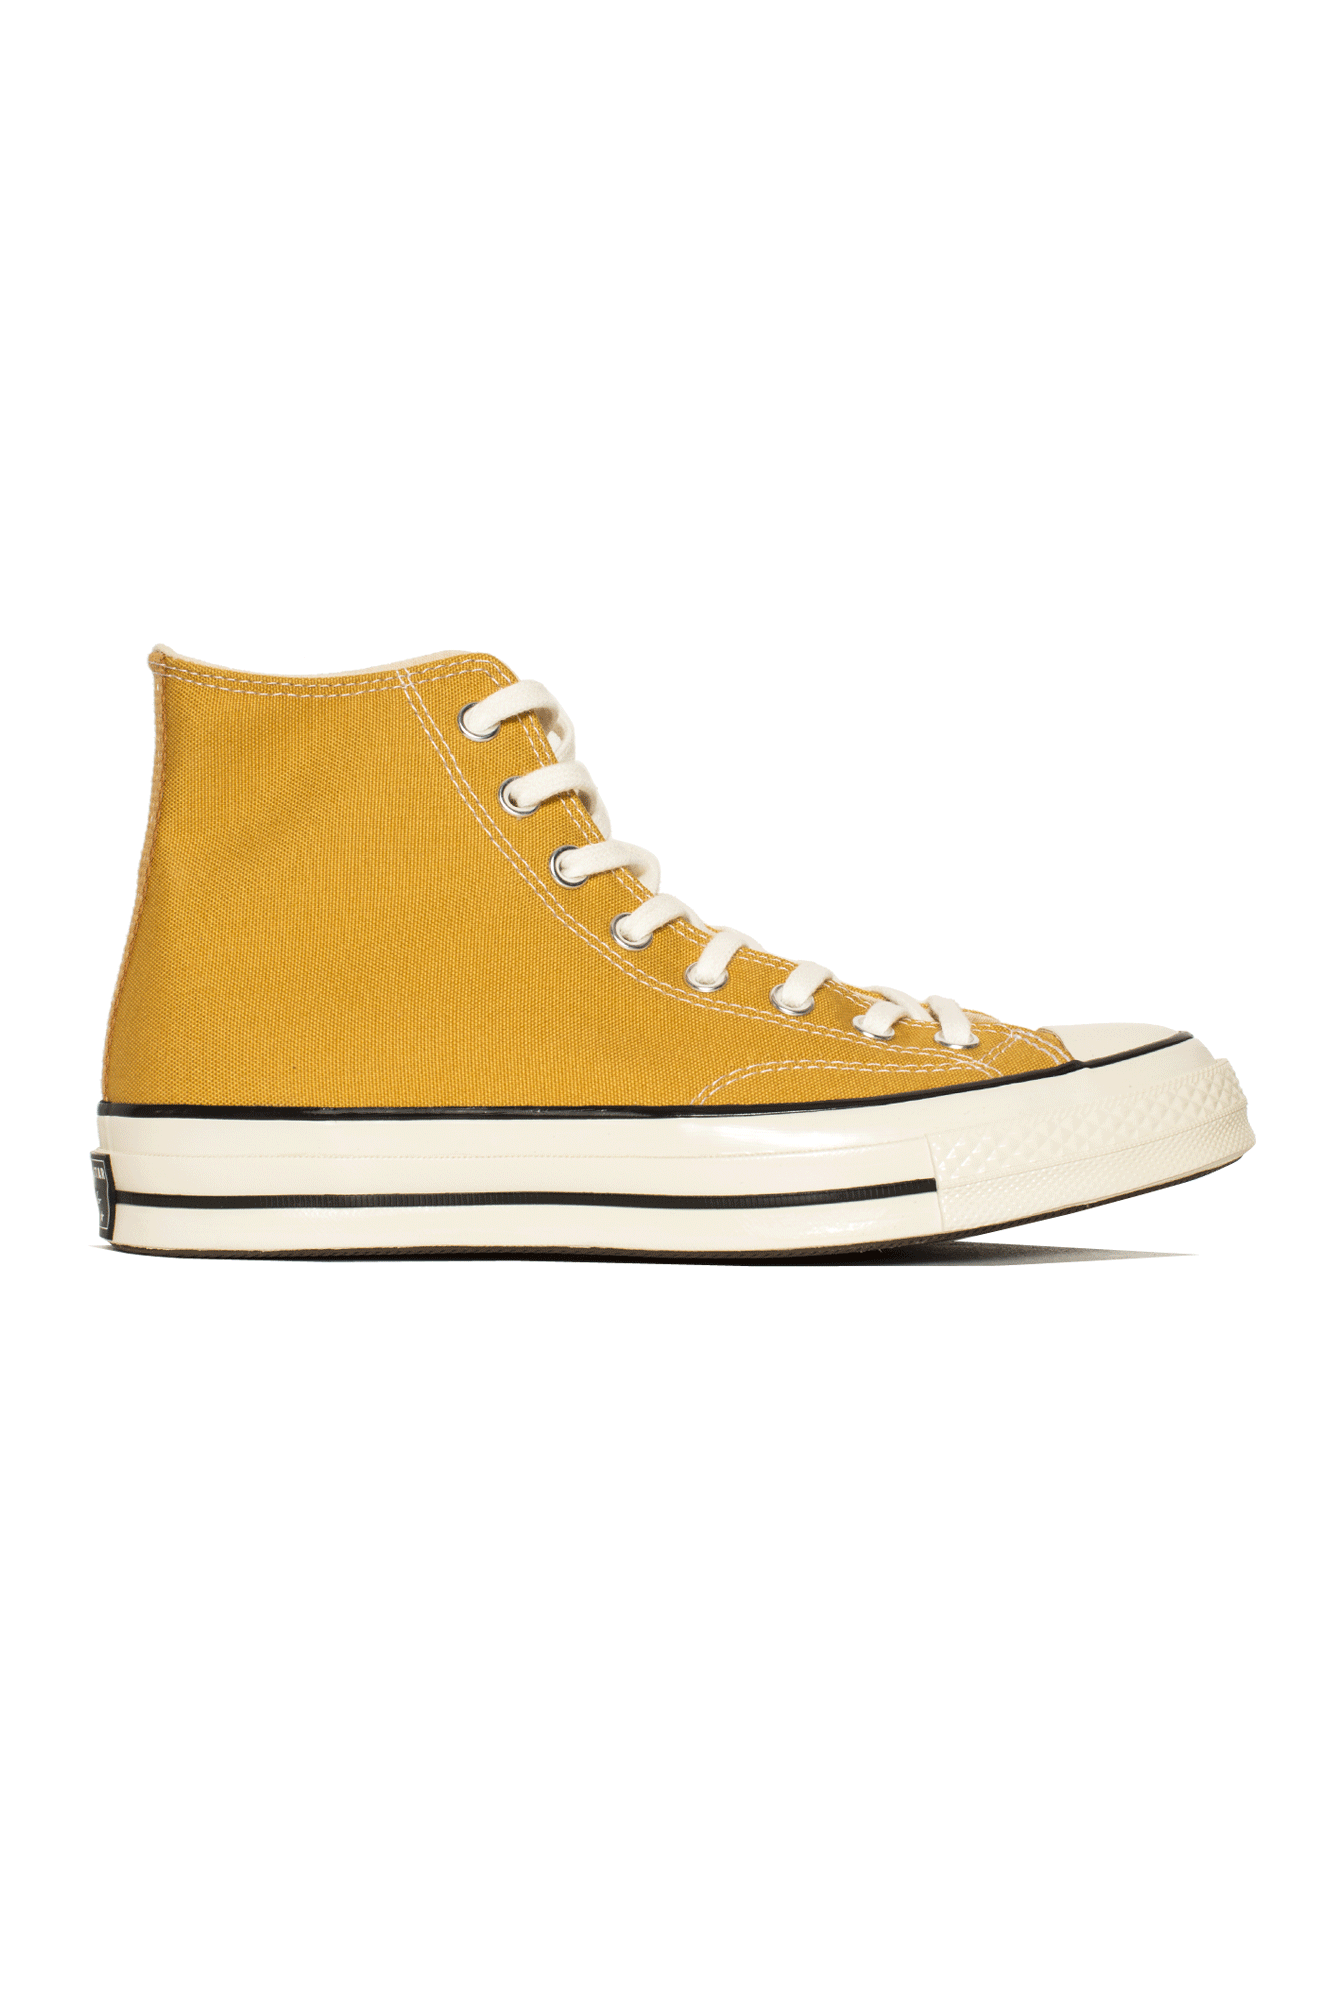 Chuck 70 HI Yellow